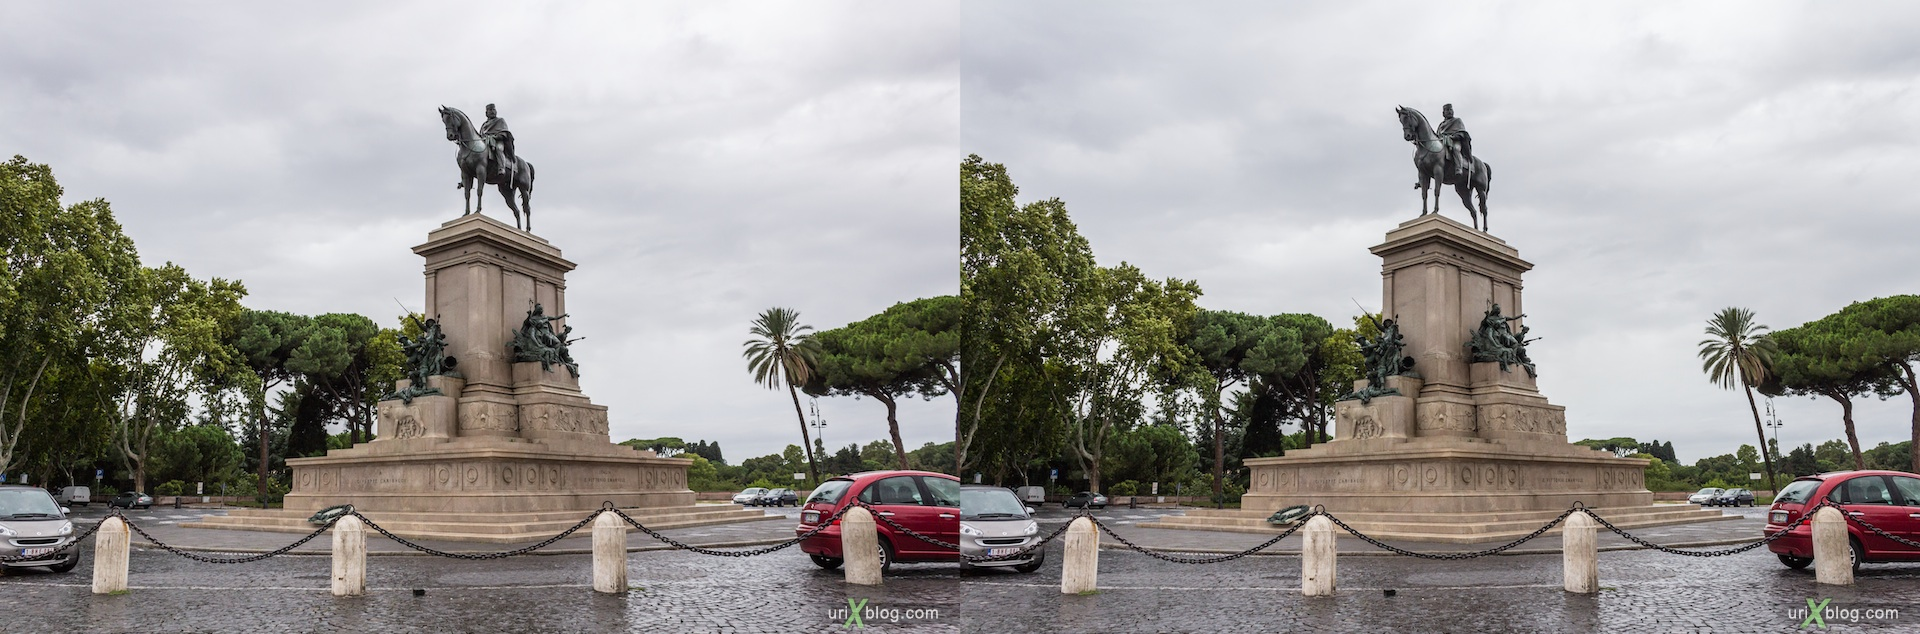 2012, Garibaldi square, Garibaldi statue, horse, Rome, Italy, Europe, 3D, stereo pair, cross-eyed, crossview, cross view stereo pair